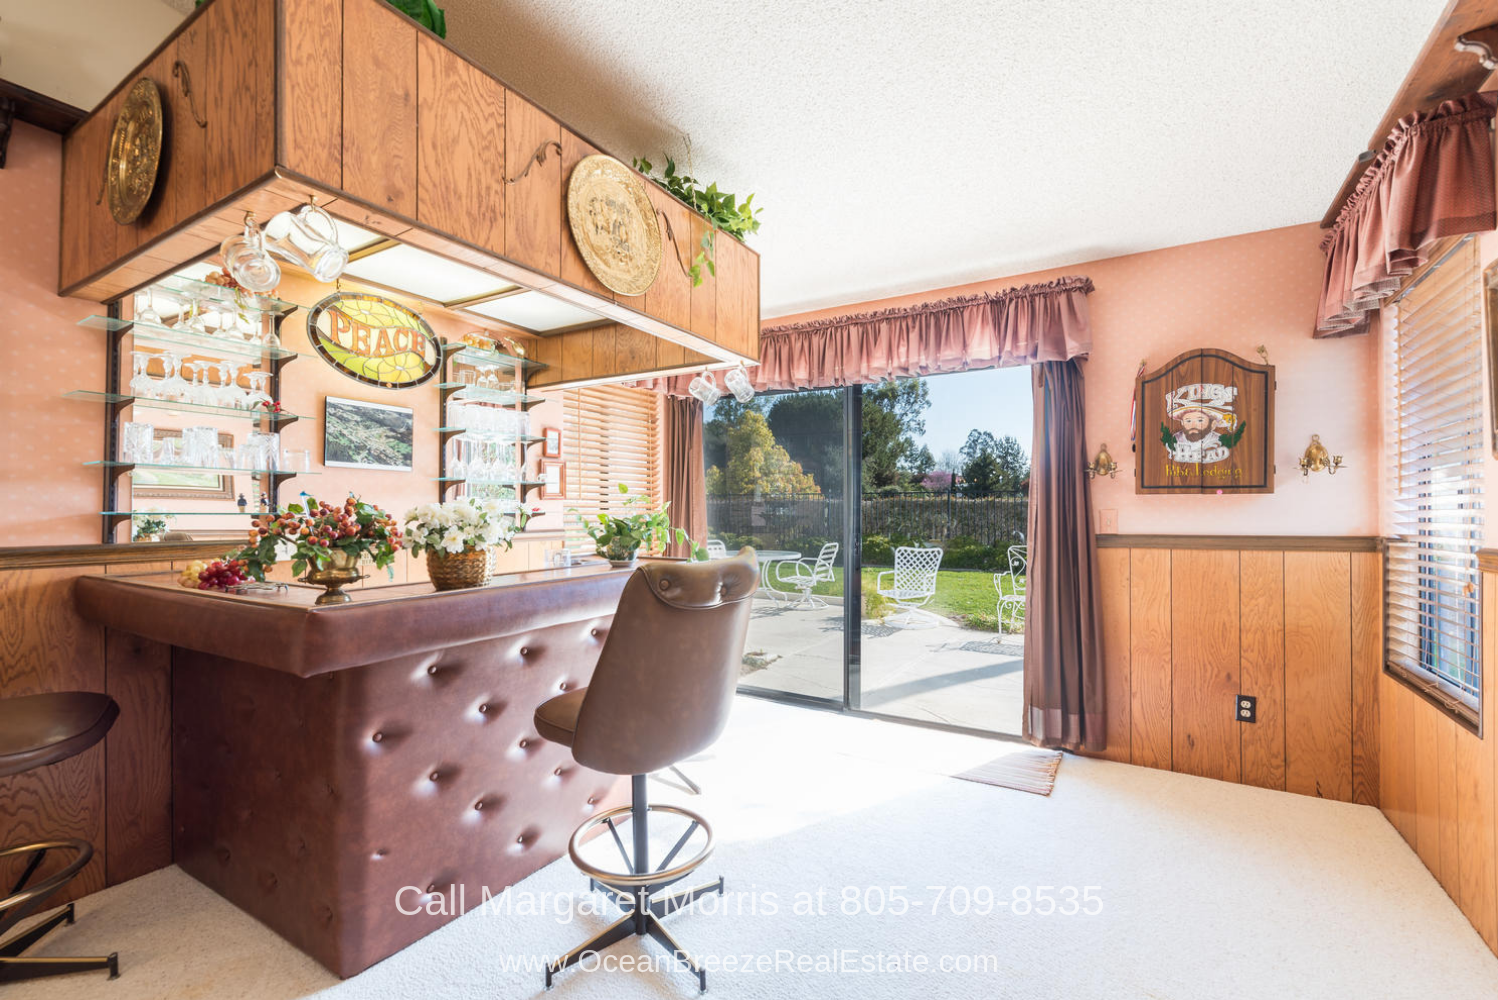 Crown Pointe Subdivision Nipomo CA Golf Homes for Sale - Invite your friends over and have amazing conversations in the den/ pub of this Nipomo CA golf course home for sale.